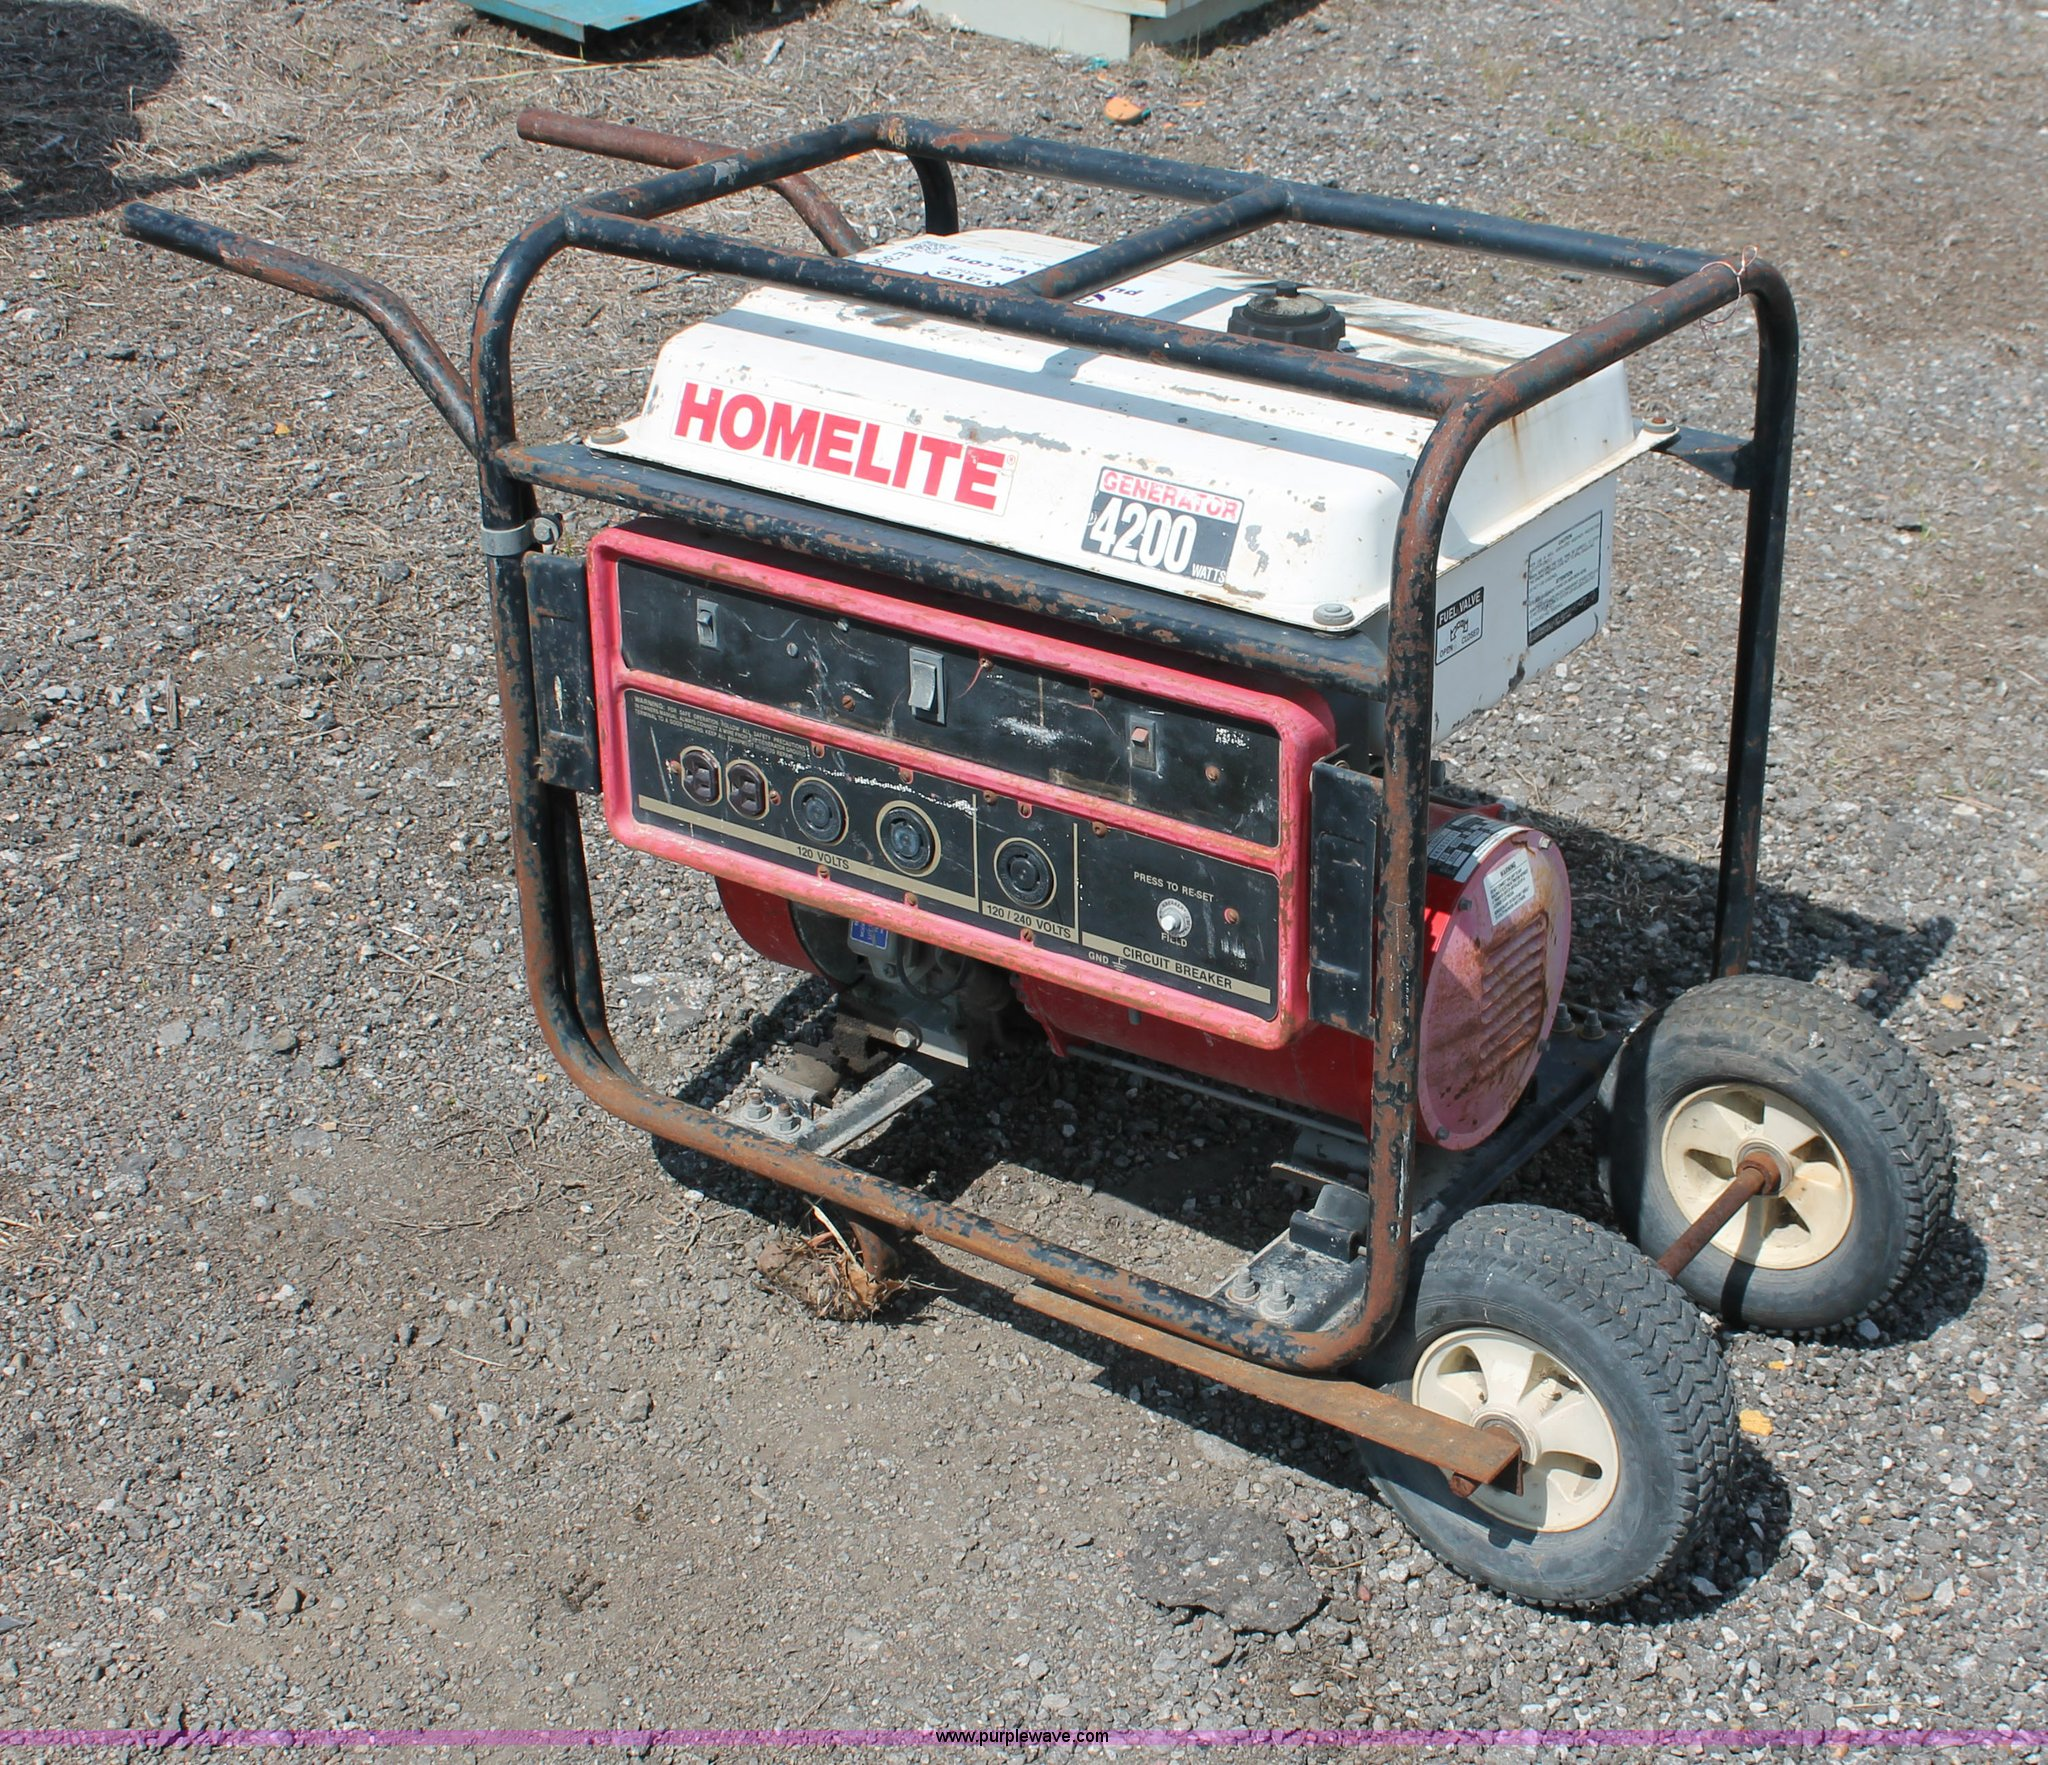 Homelite 4200 Generator Manual Wiring Diagram 4 200 Watt Item E3500 Sold June 5 Ci Rh Purplewave Com 5500